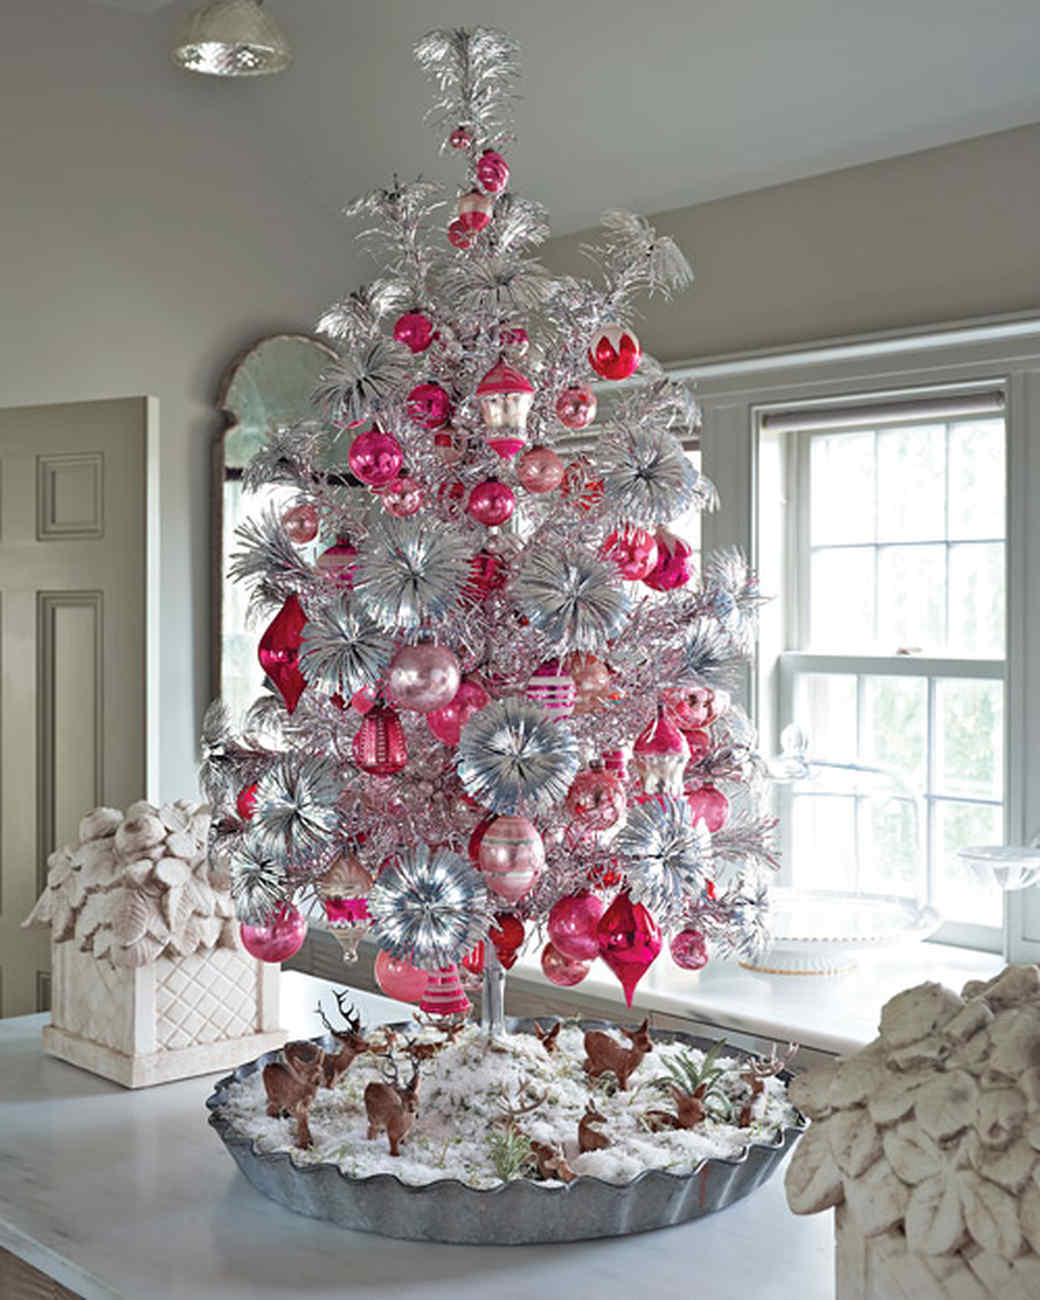 28 creative christmas tree decorating ideas martha stewart - Silver Tinsel Christmas Tree